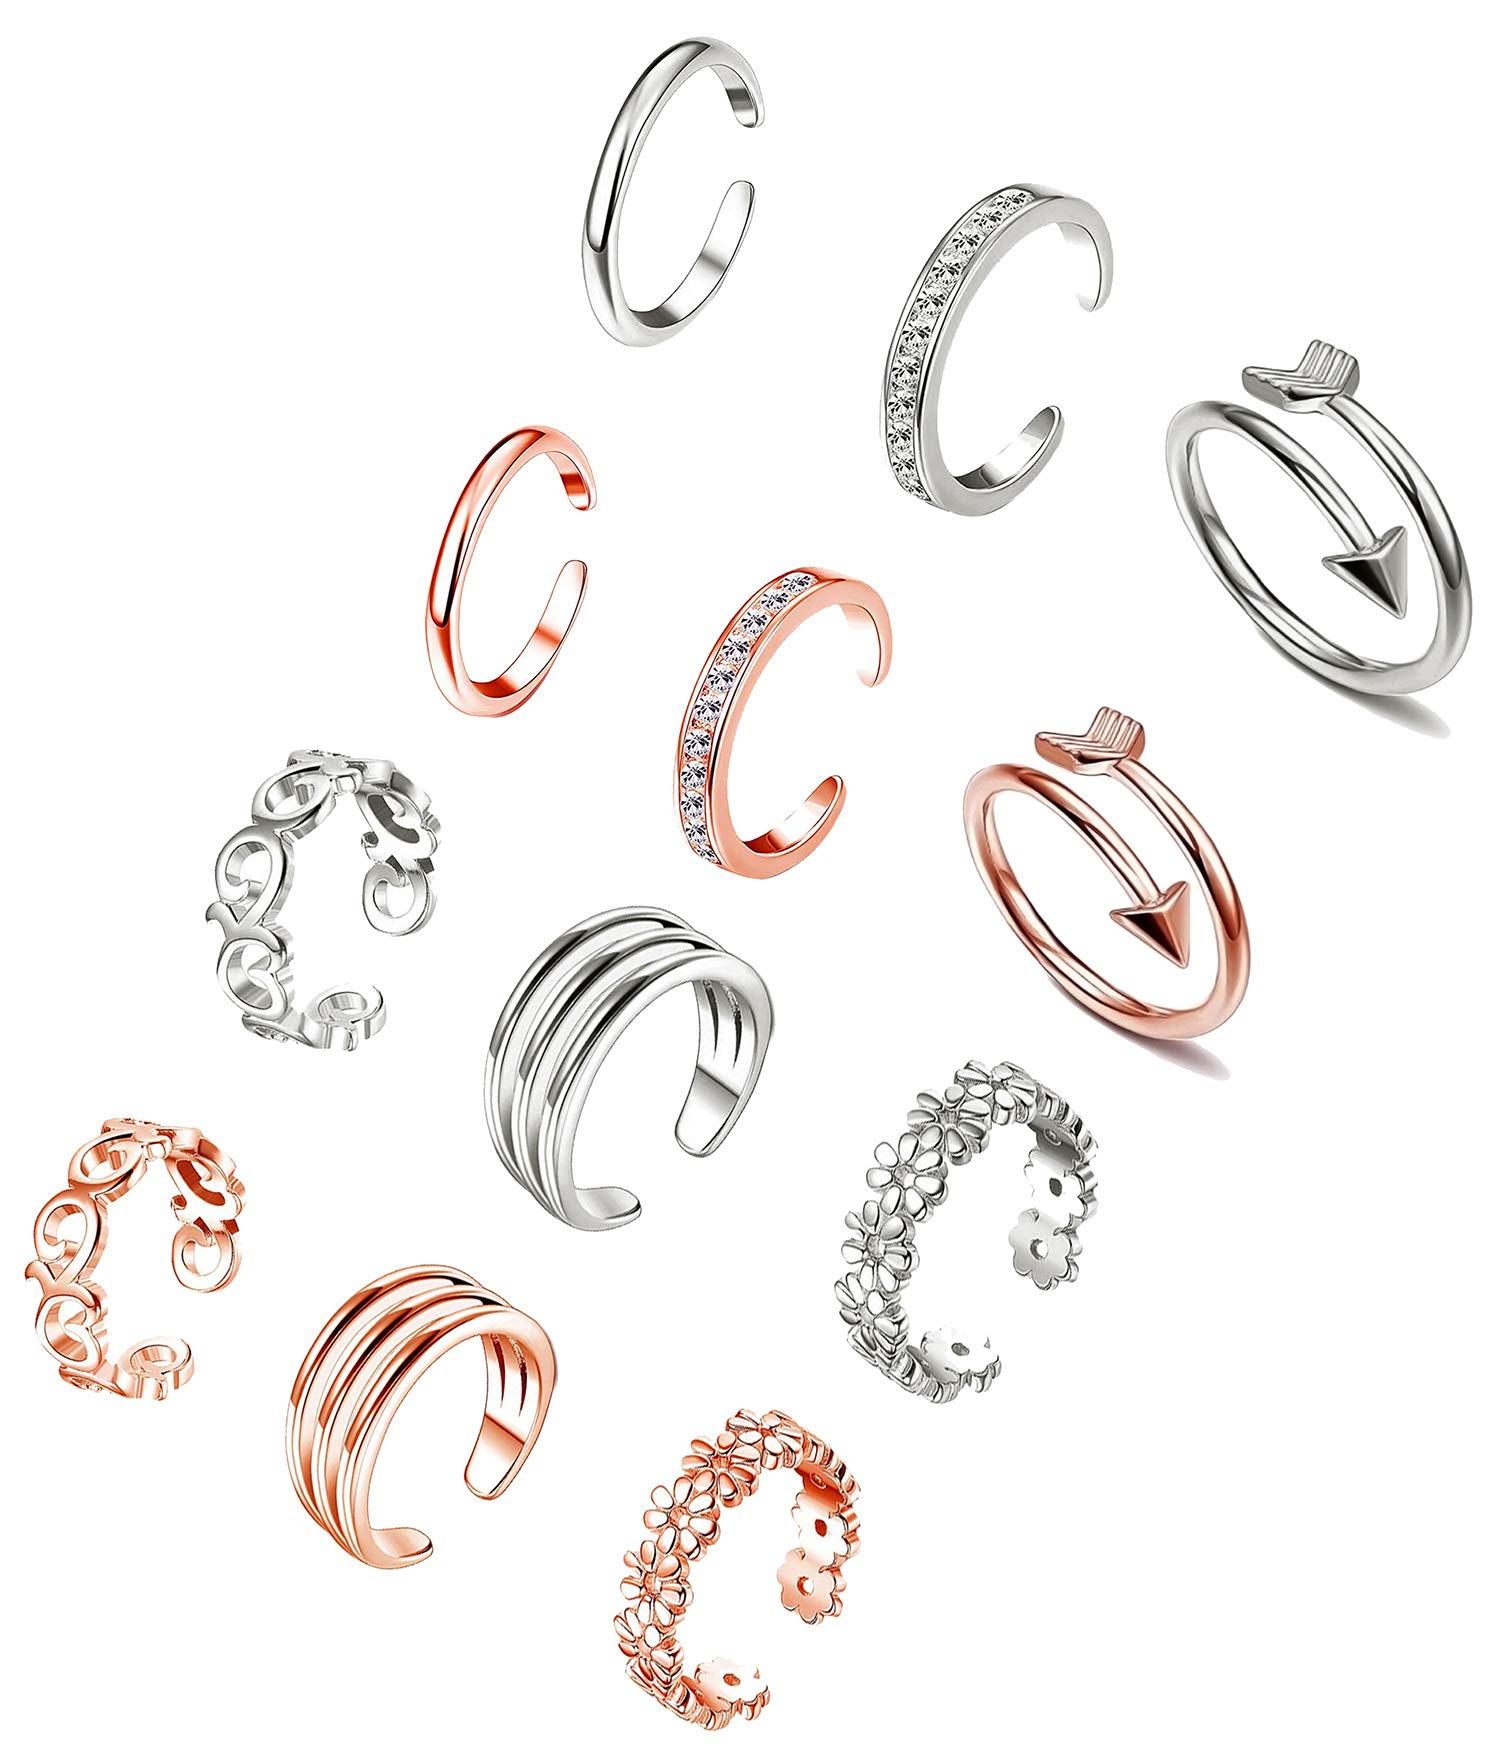 XINBOO Open Toe Rings Set for Women Girls Adjustable Rose Gold Silver Cute Knuckle Pinky Rings 6/12PCS Hypoallergenic Finger Foot Jewelry